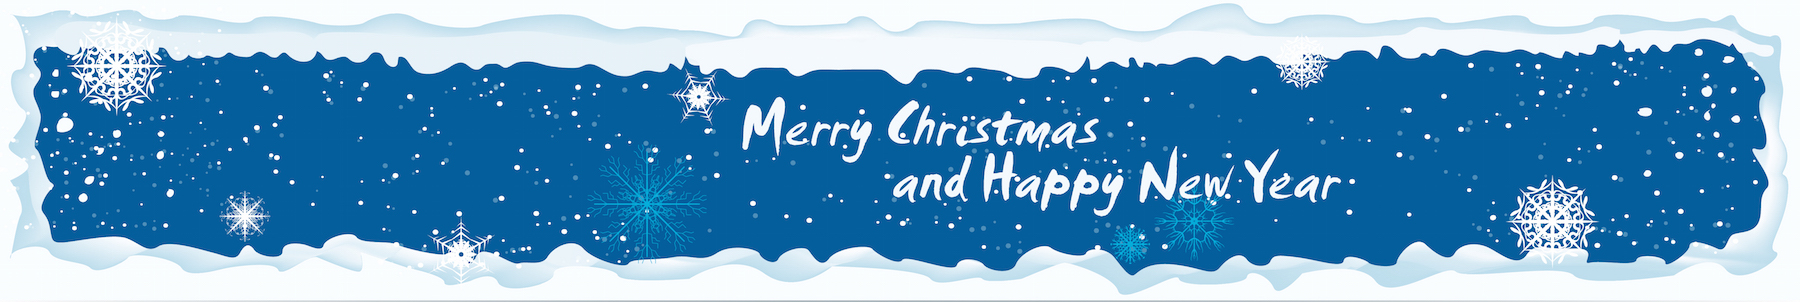 merry-christmas-banner-blue